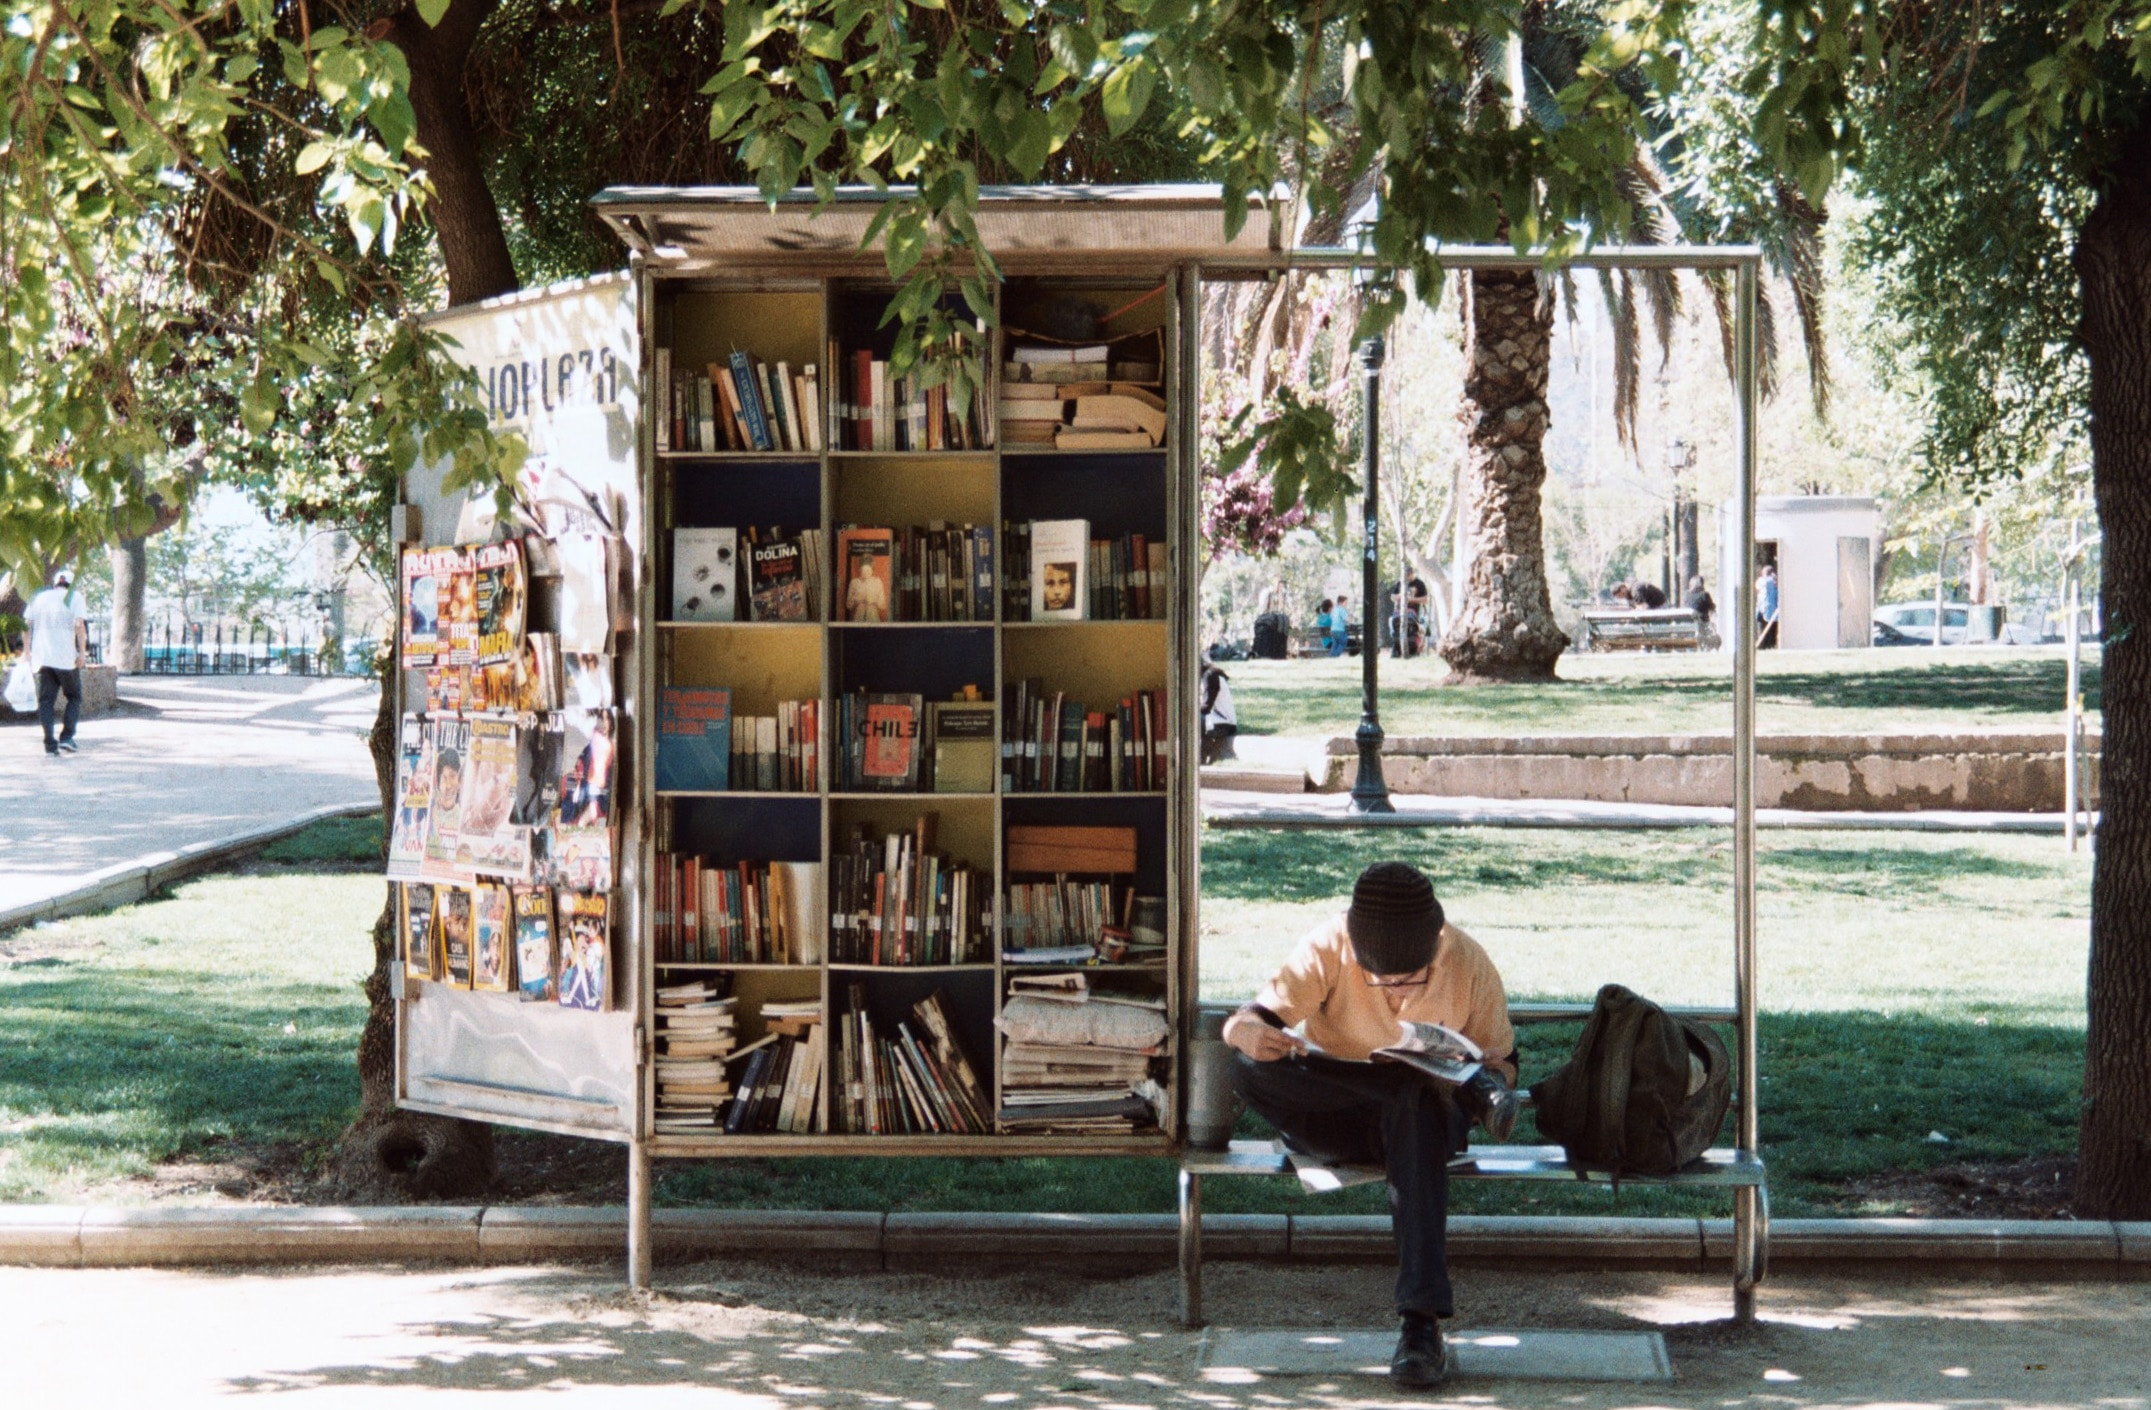 Parque Forestal, Santiago, Chile. Libreria Ambulante. Photo By Laëtitia Buscaylet On Unsplash.